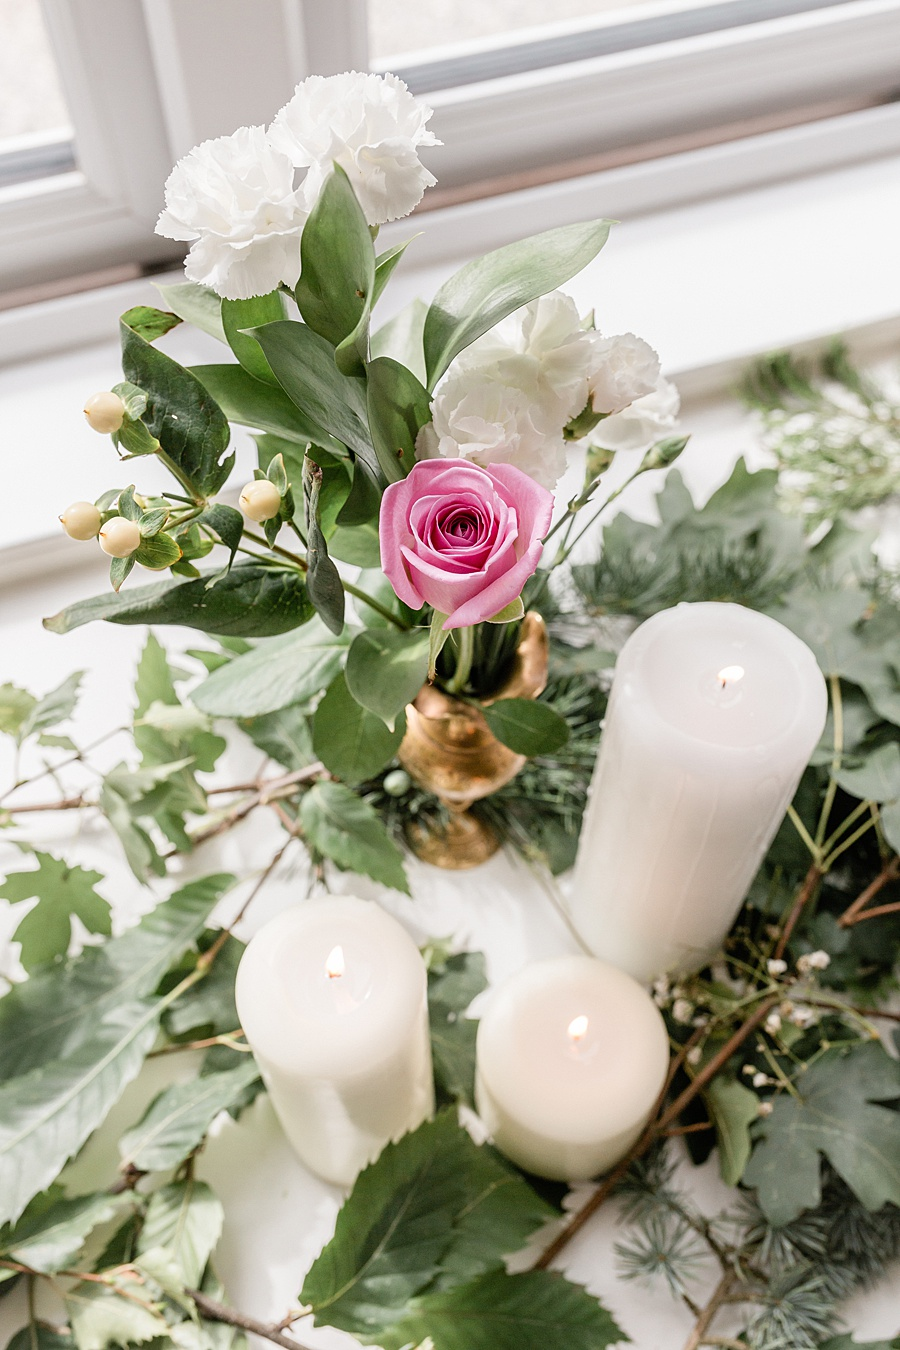 Neutral organic and minimal wedding style ideas from Kingsdown Rectory. Styling Your Wedding Your Way Images Kate Hennessey Photography (11)